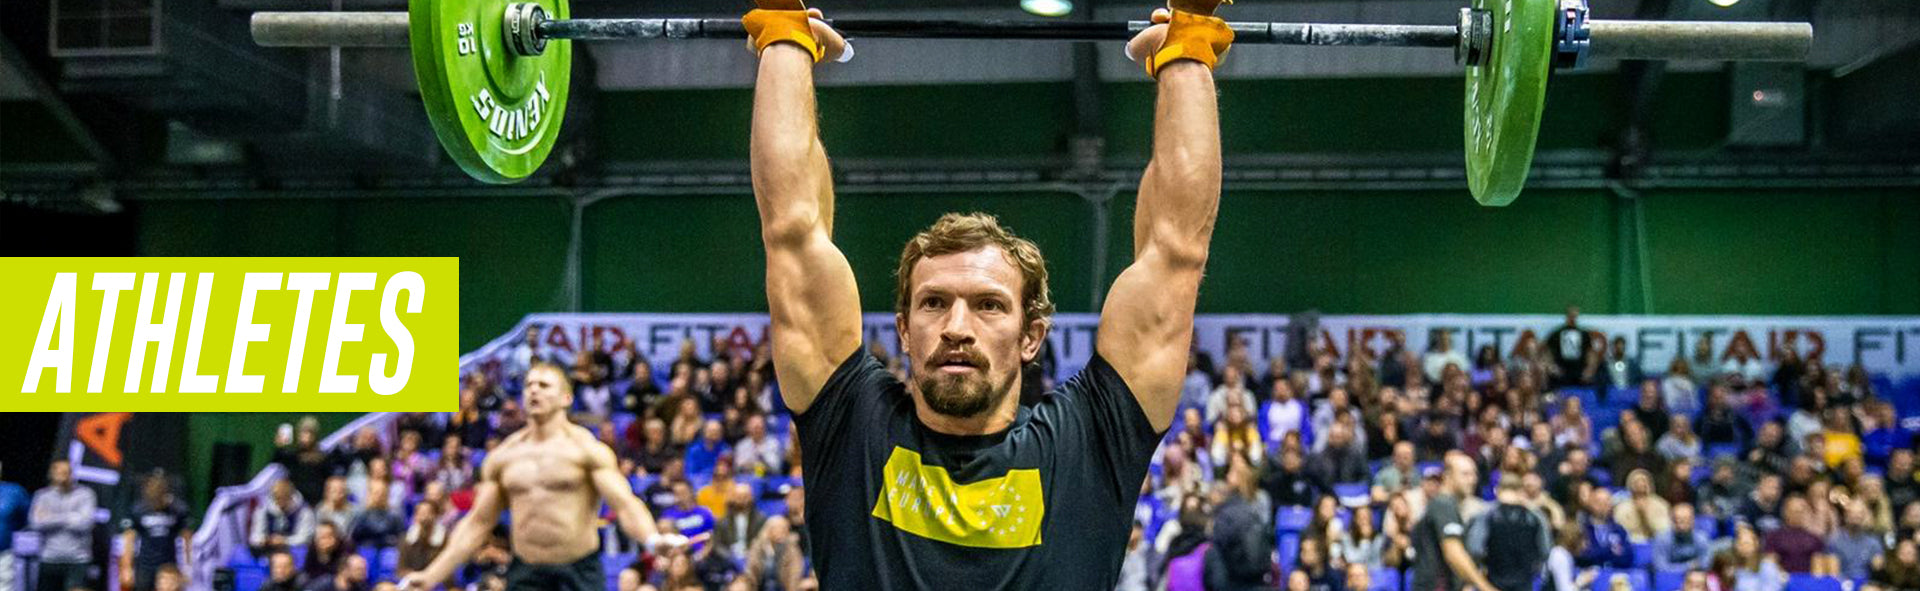 Athletes Sponsored Crossfit Games